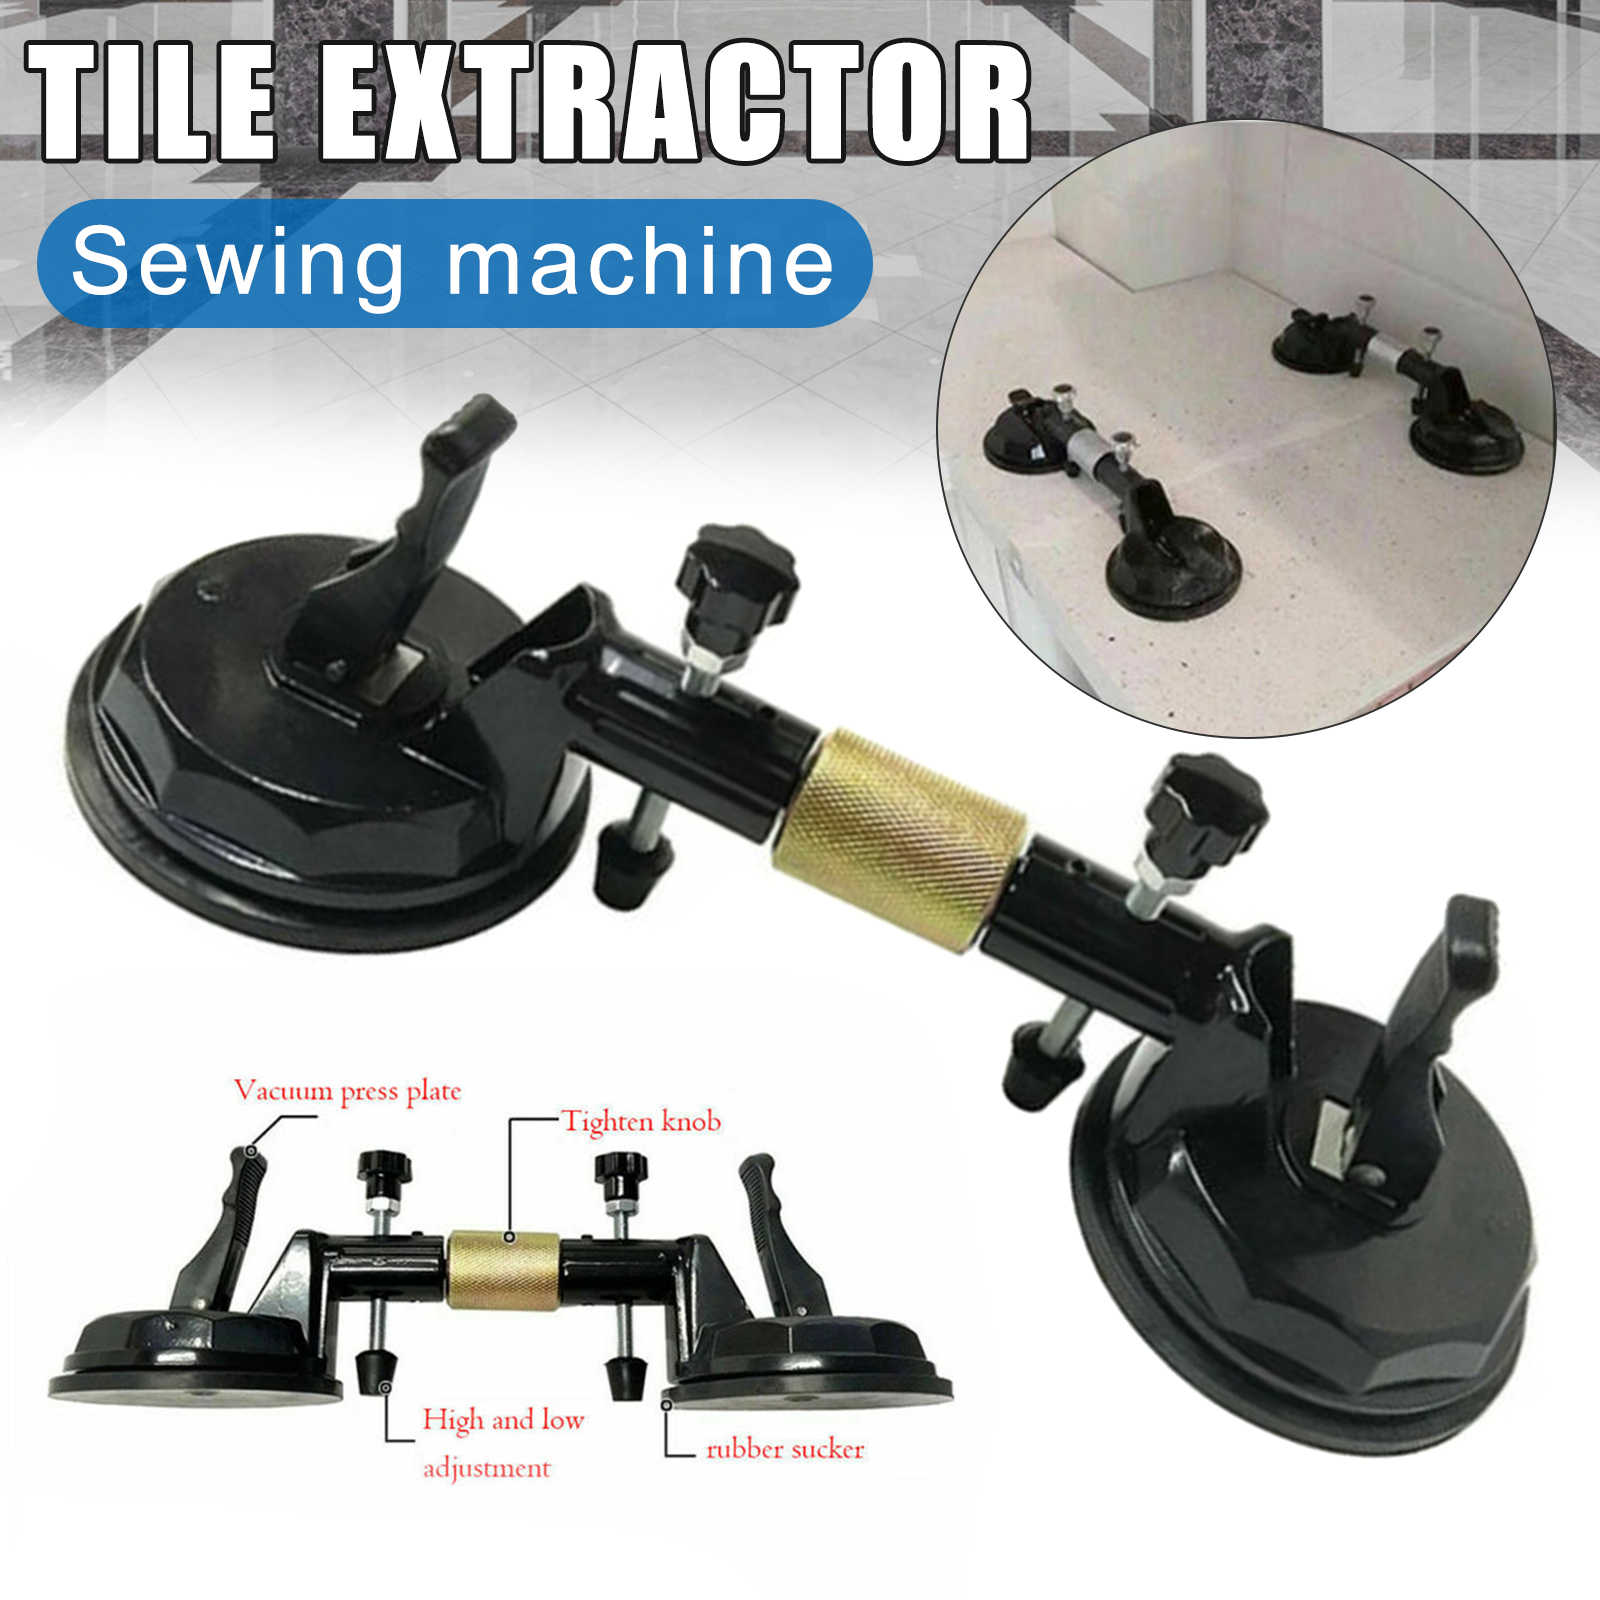 Adjustable Suction Cup Stone Seam Setter for Pulling and Aligning Tiles  Flat Surfaces ct